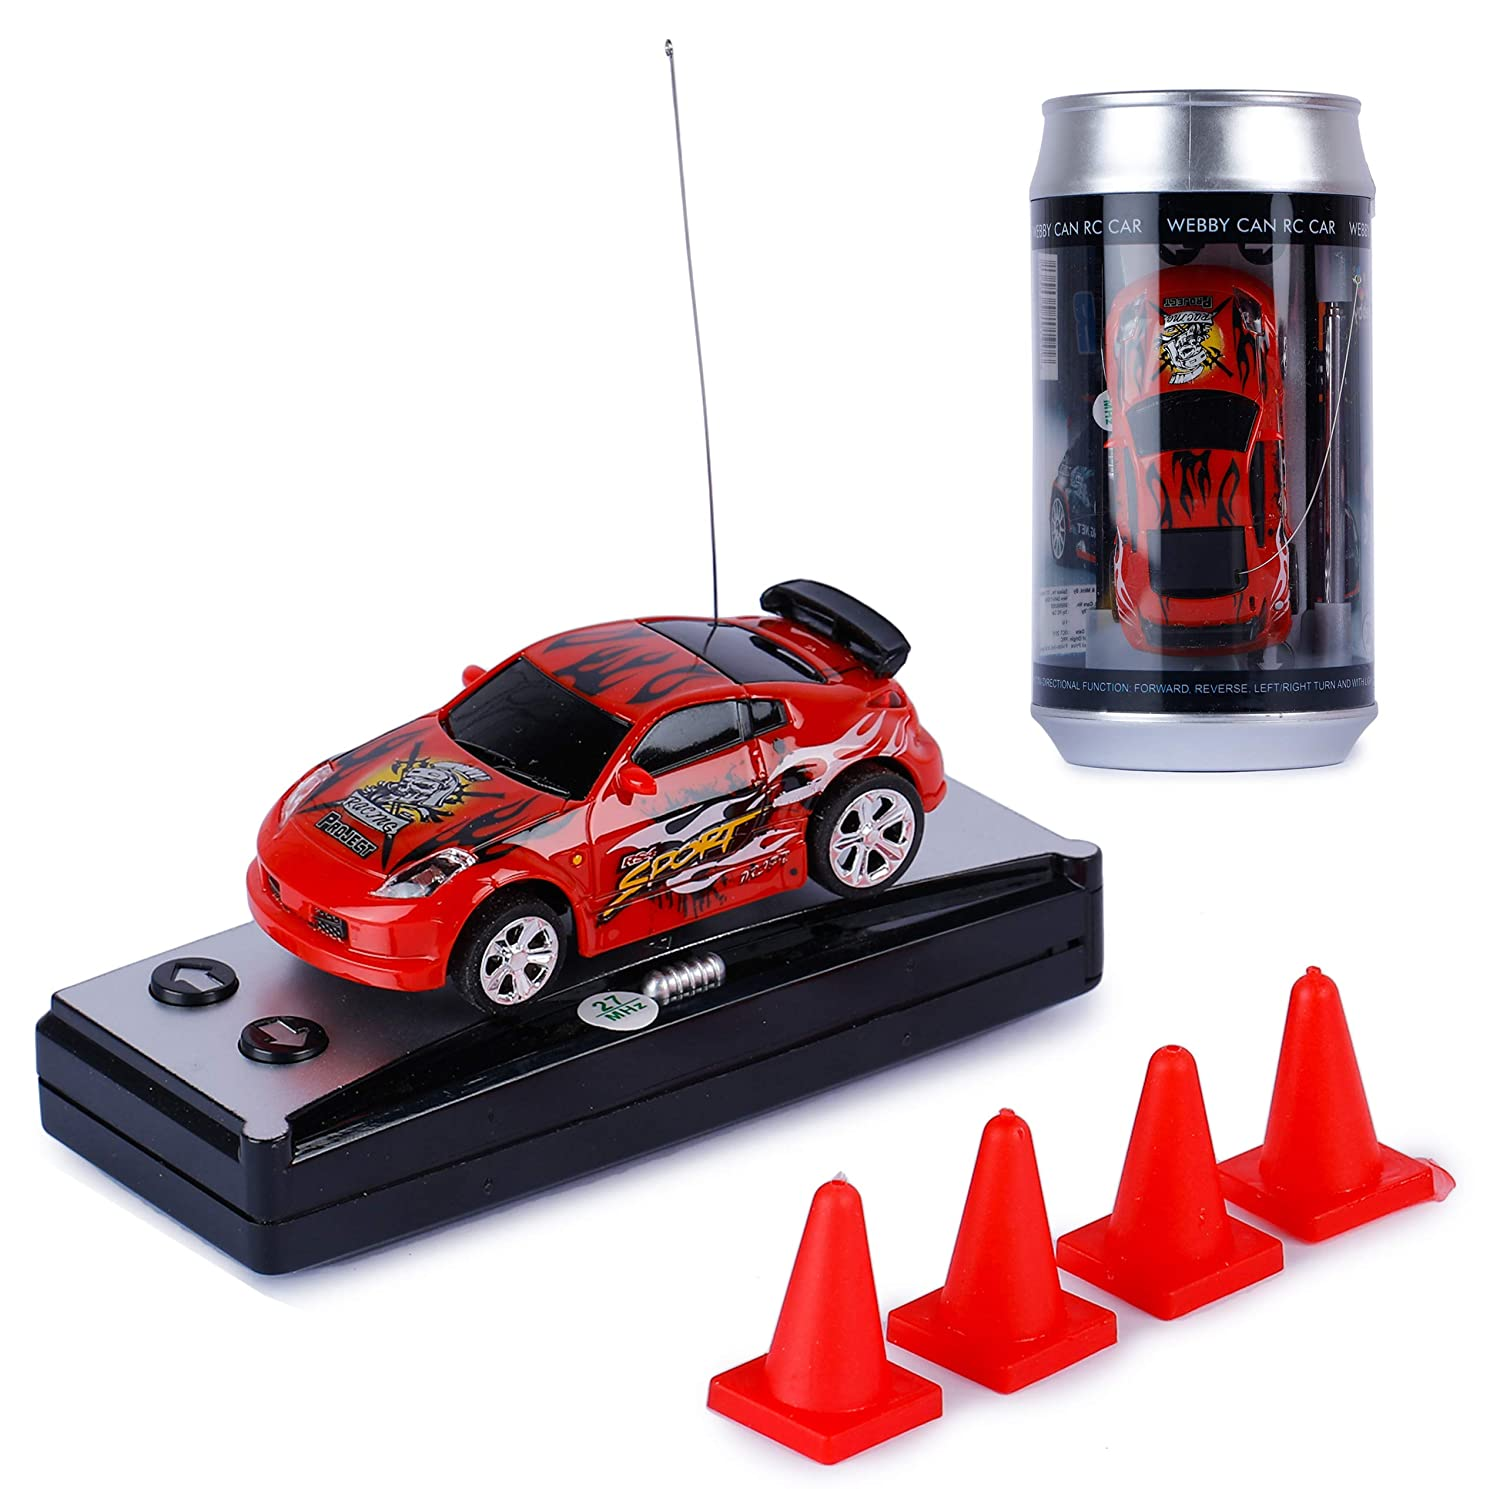 Buy Saffire Mini Coke Can Rc Micro Racing Car Online At Low Prices In India Amazon In